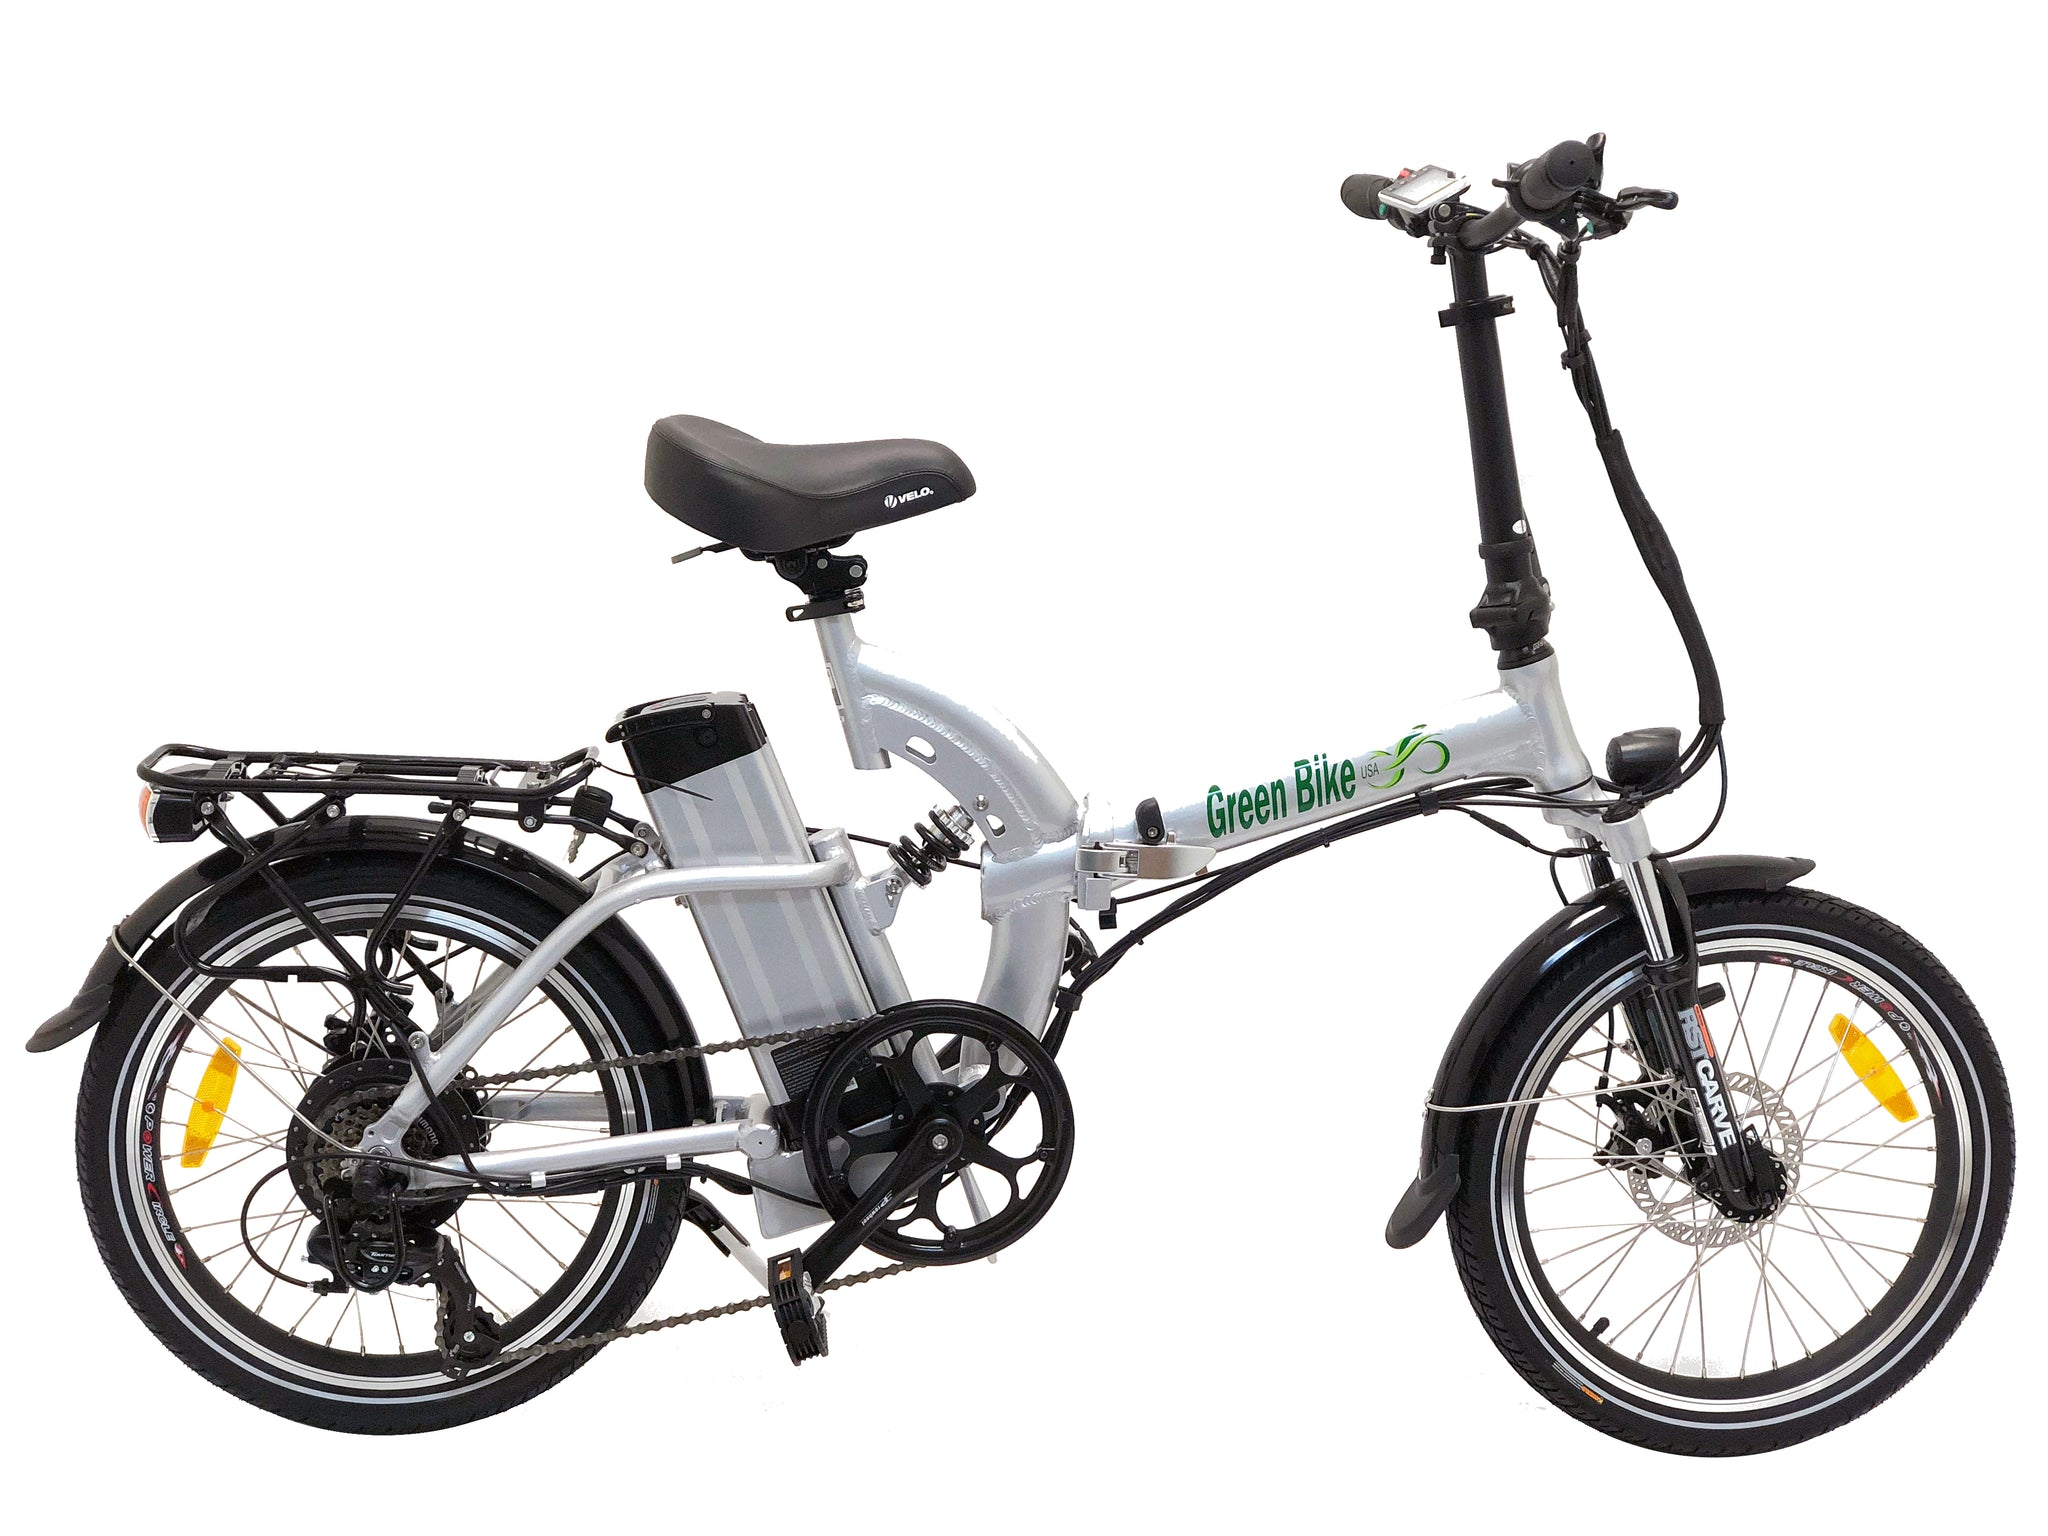 Green Bike USA GB500 Folding Electric Commuter Bike